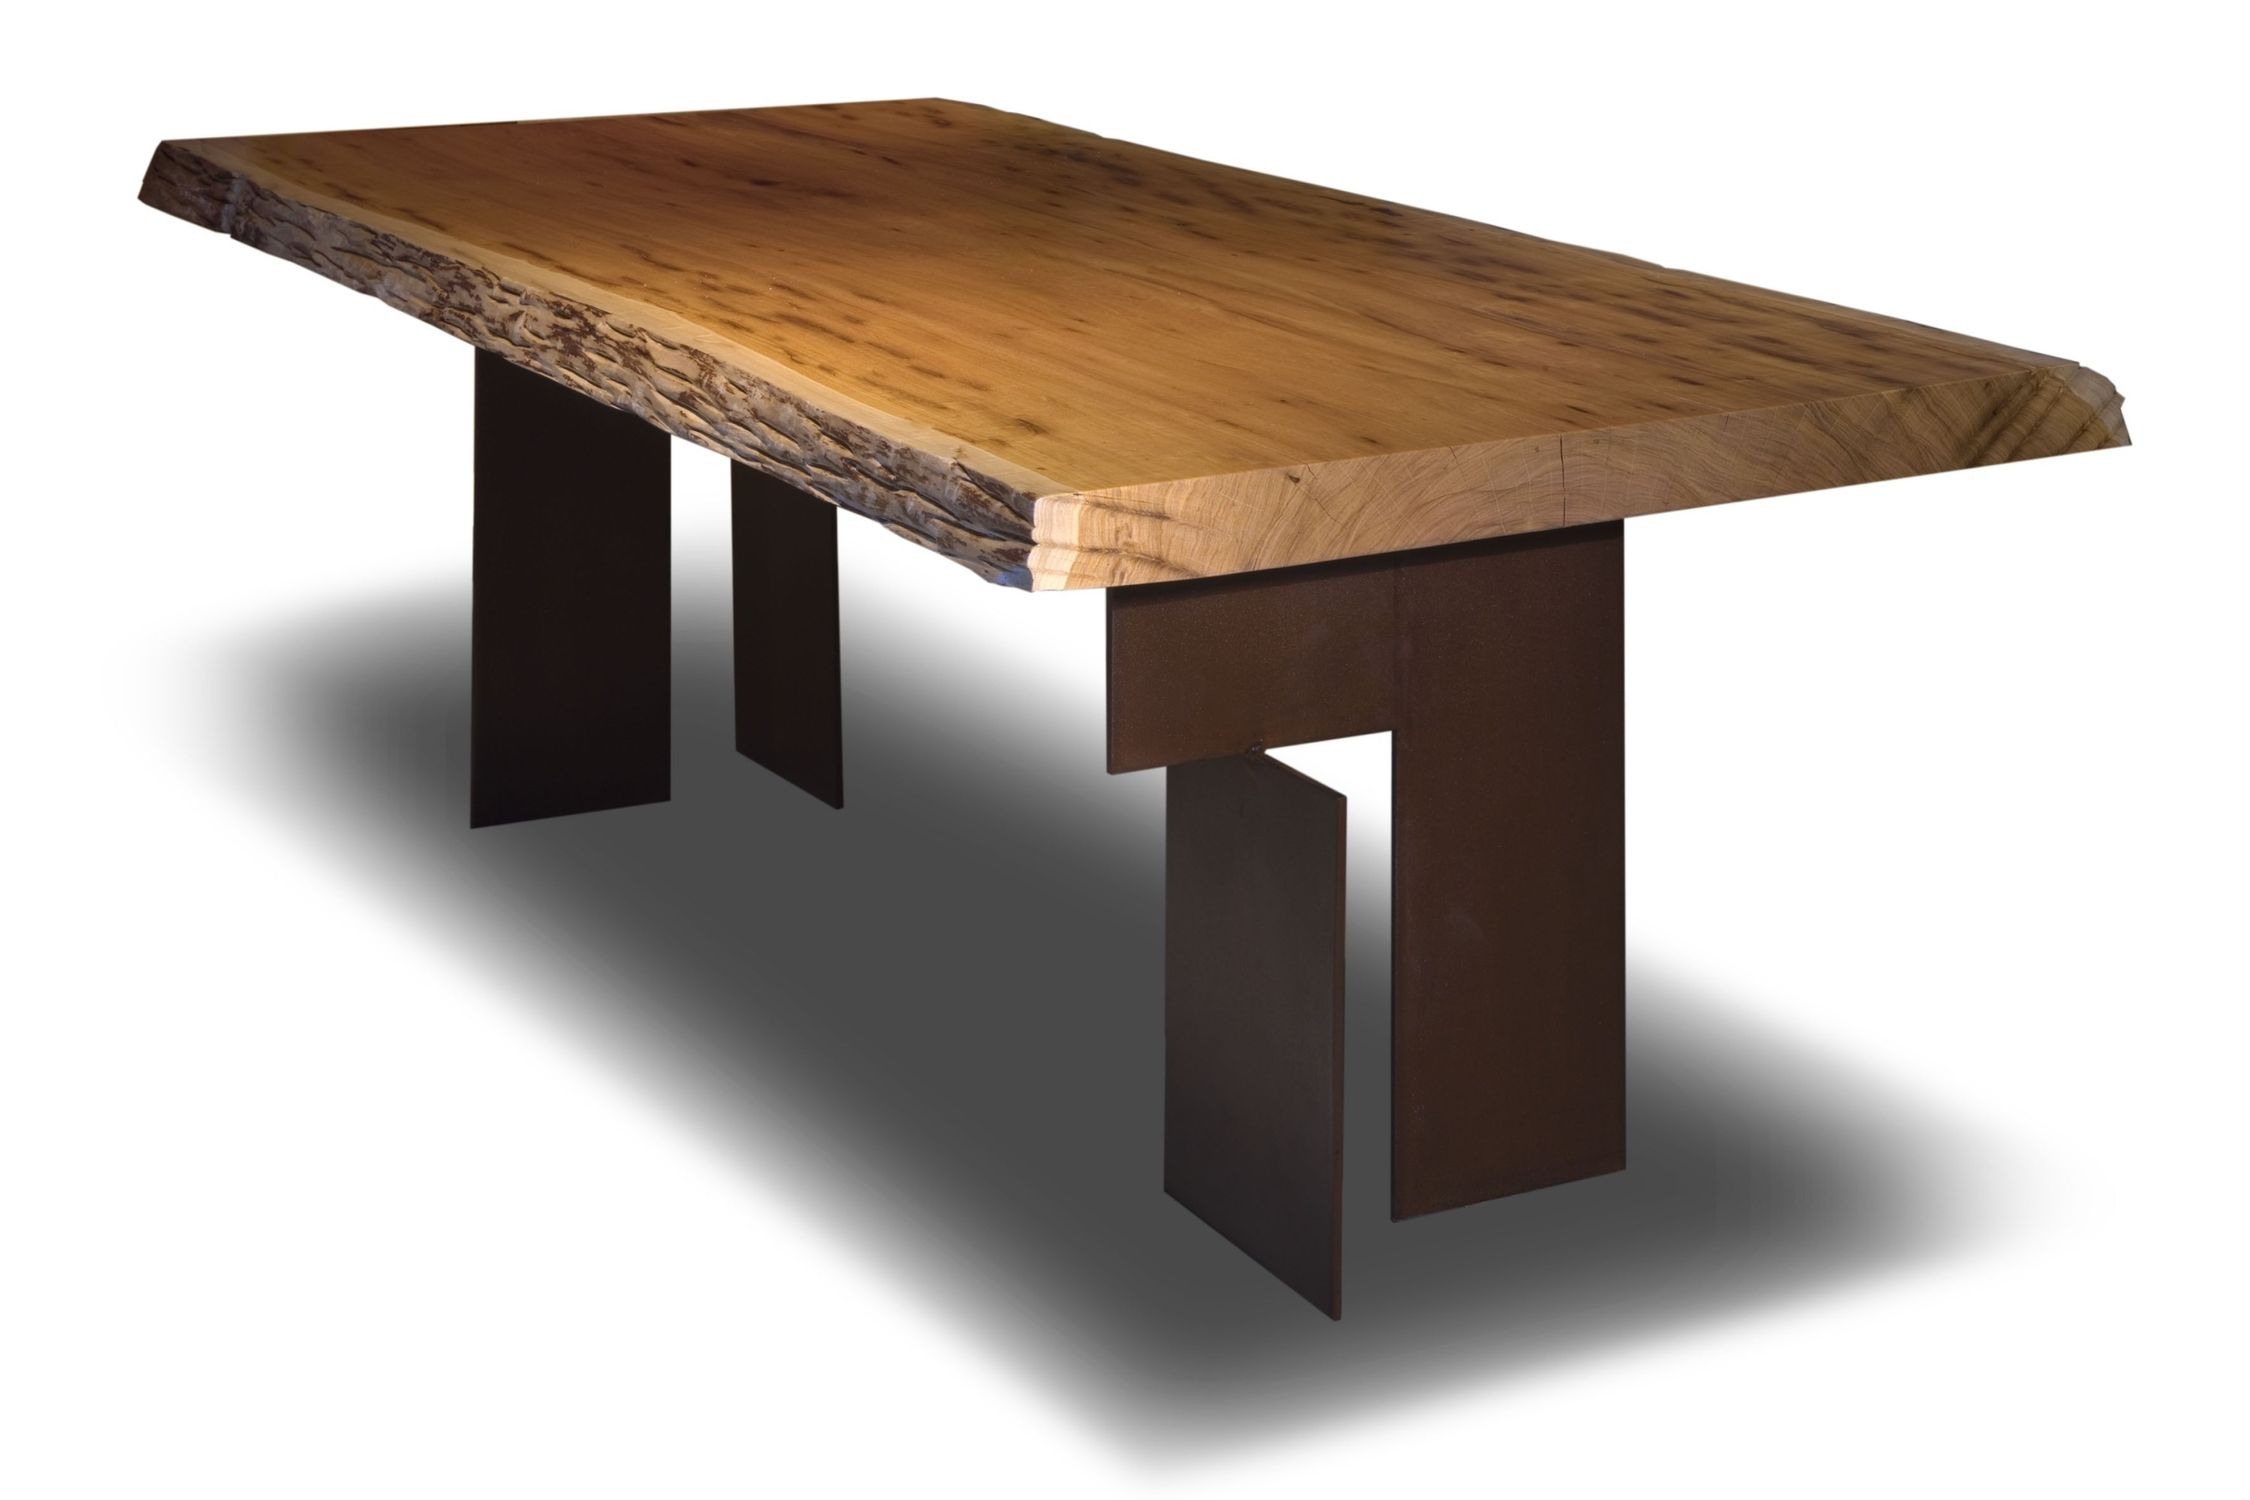 Contemporary Table Wooden Rectangular In Reclaimed Material - Reclaimed wood coffee table los angeles